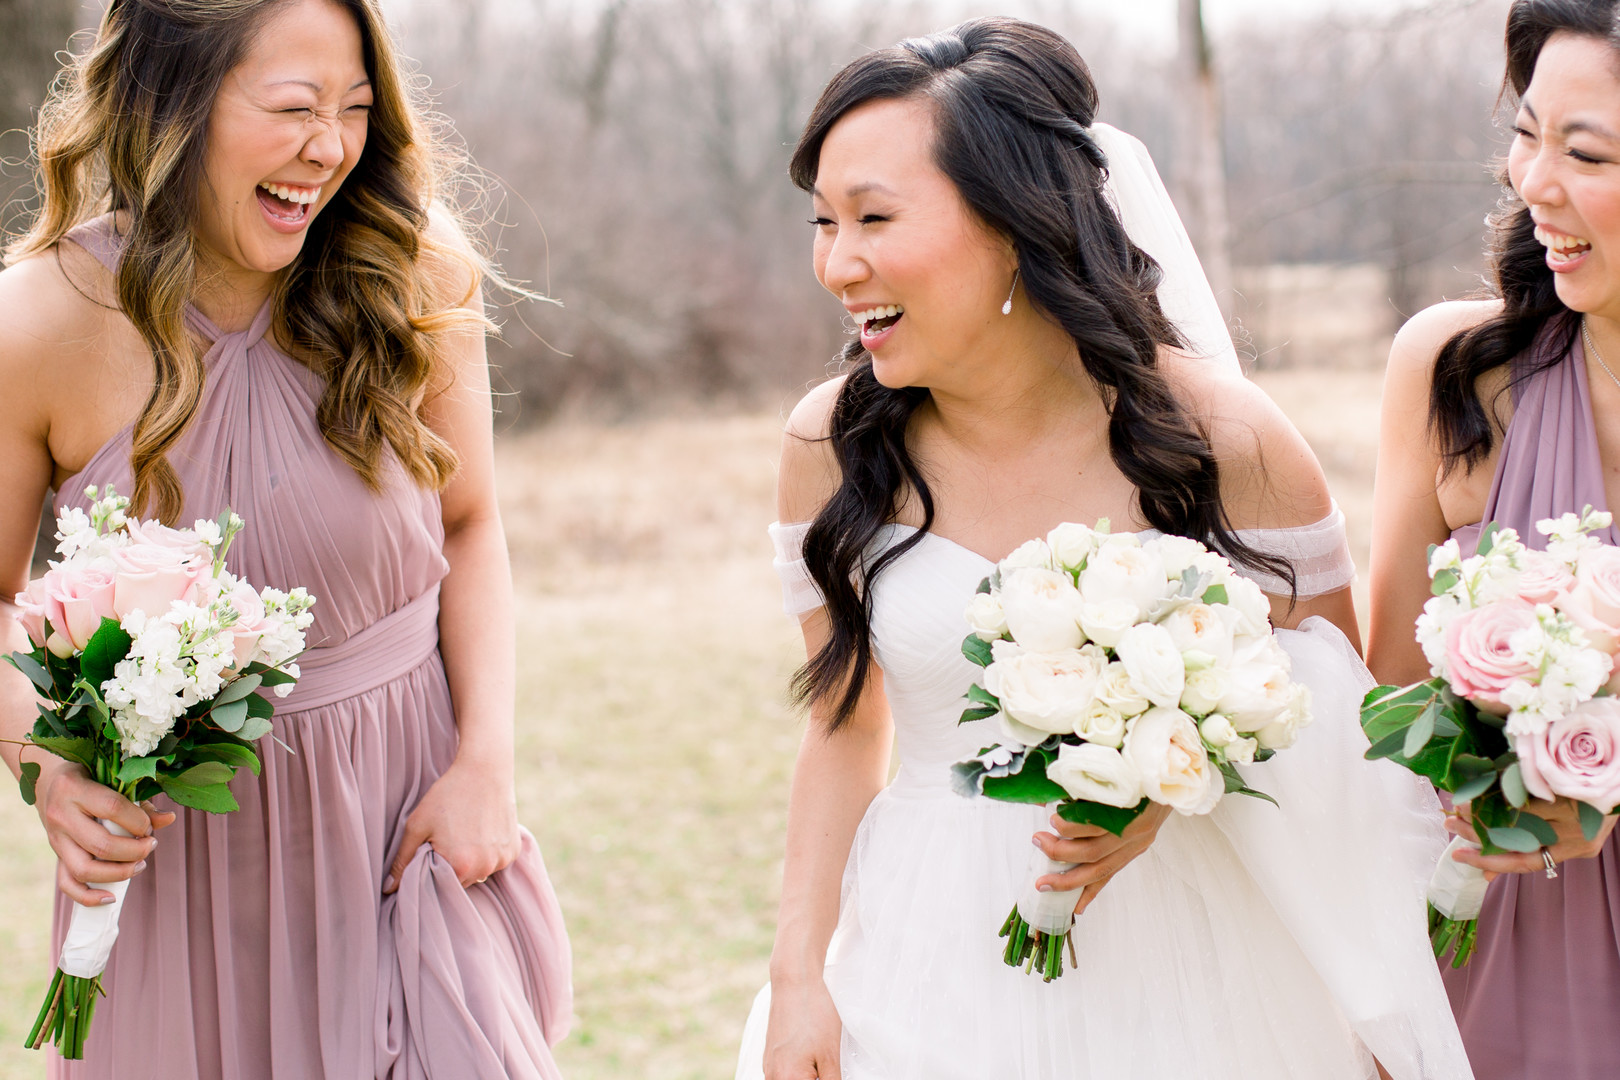 Candid wedding photos: Spring wedding inspiration captured by Nicole Morisco Photography. Find more spring wedding ideas at CHItheeWED.com!